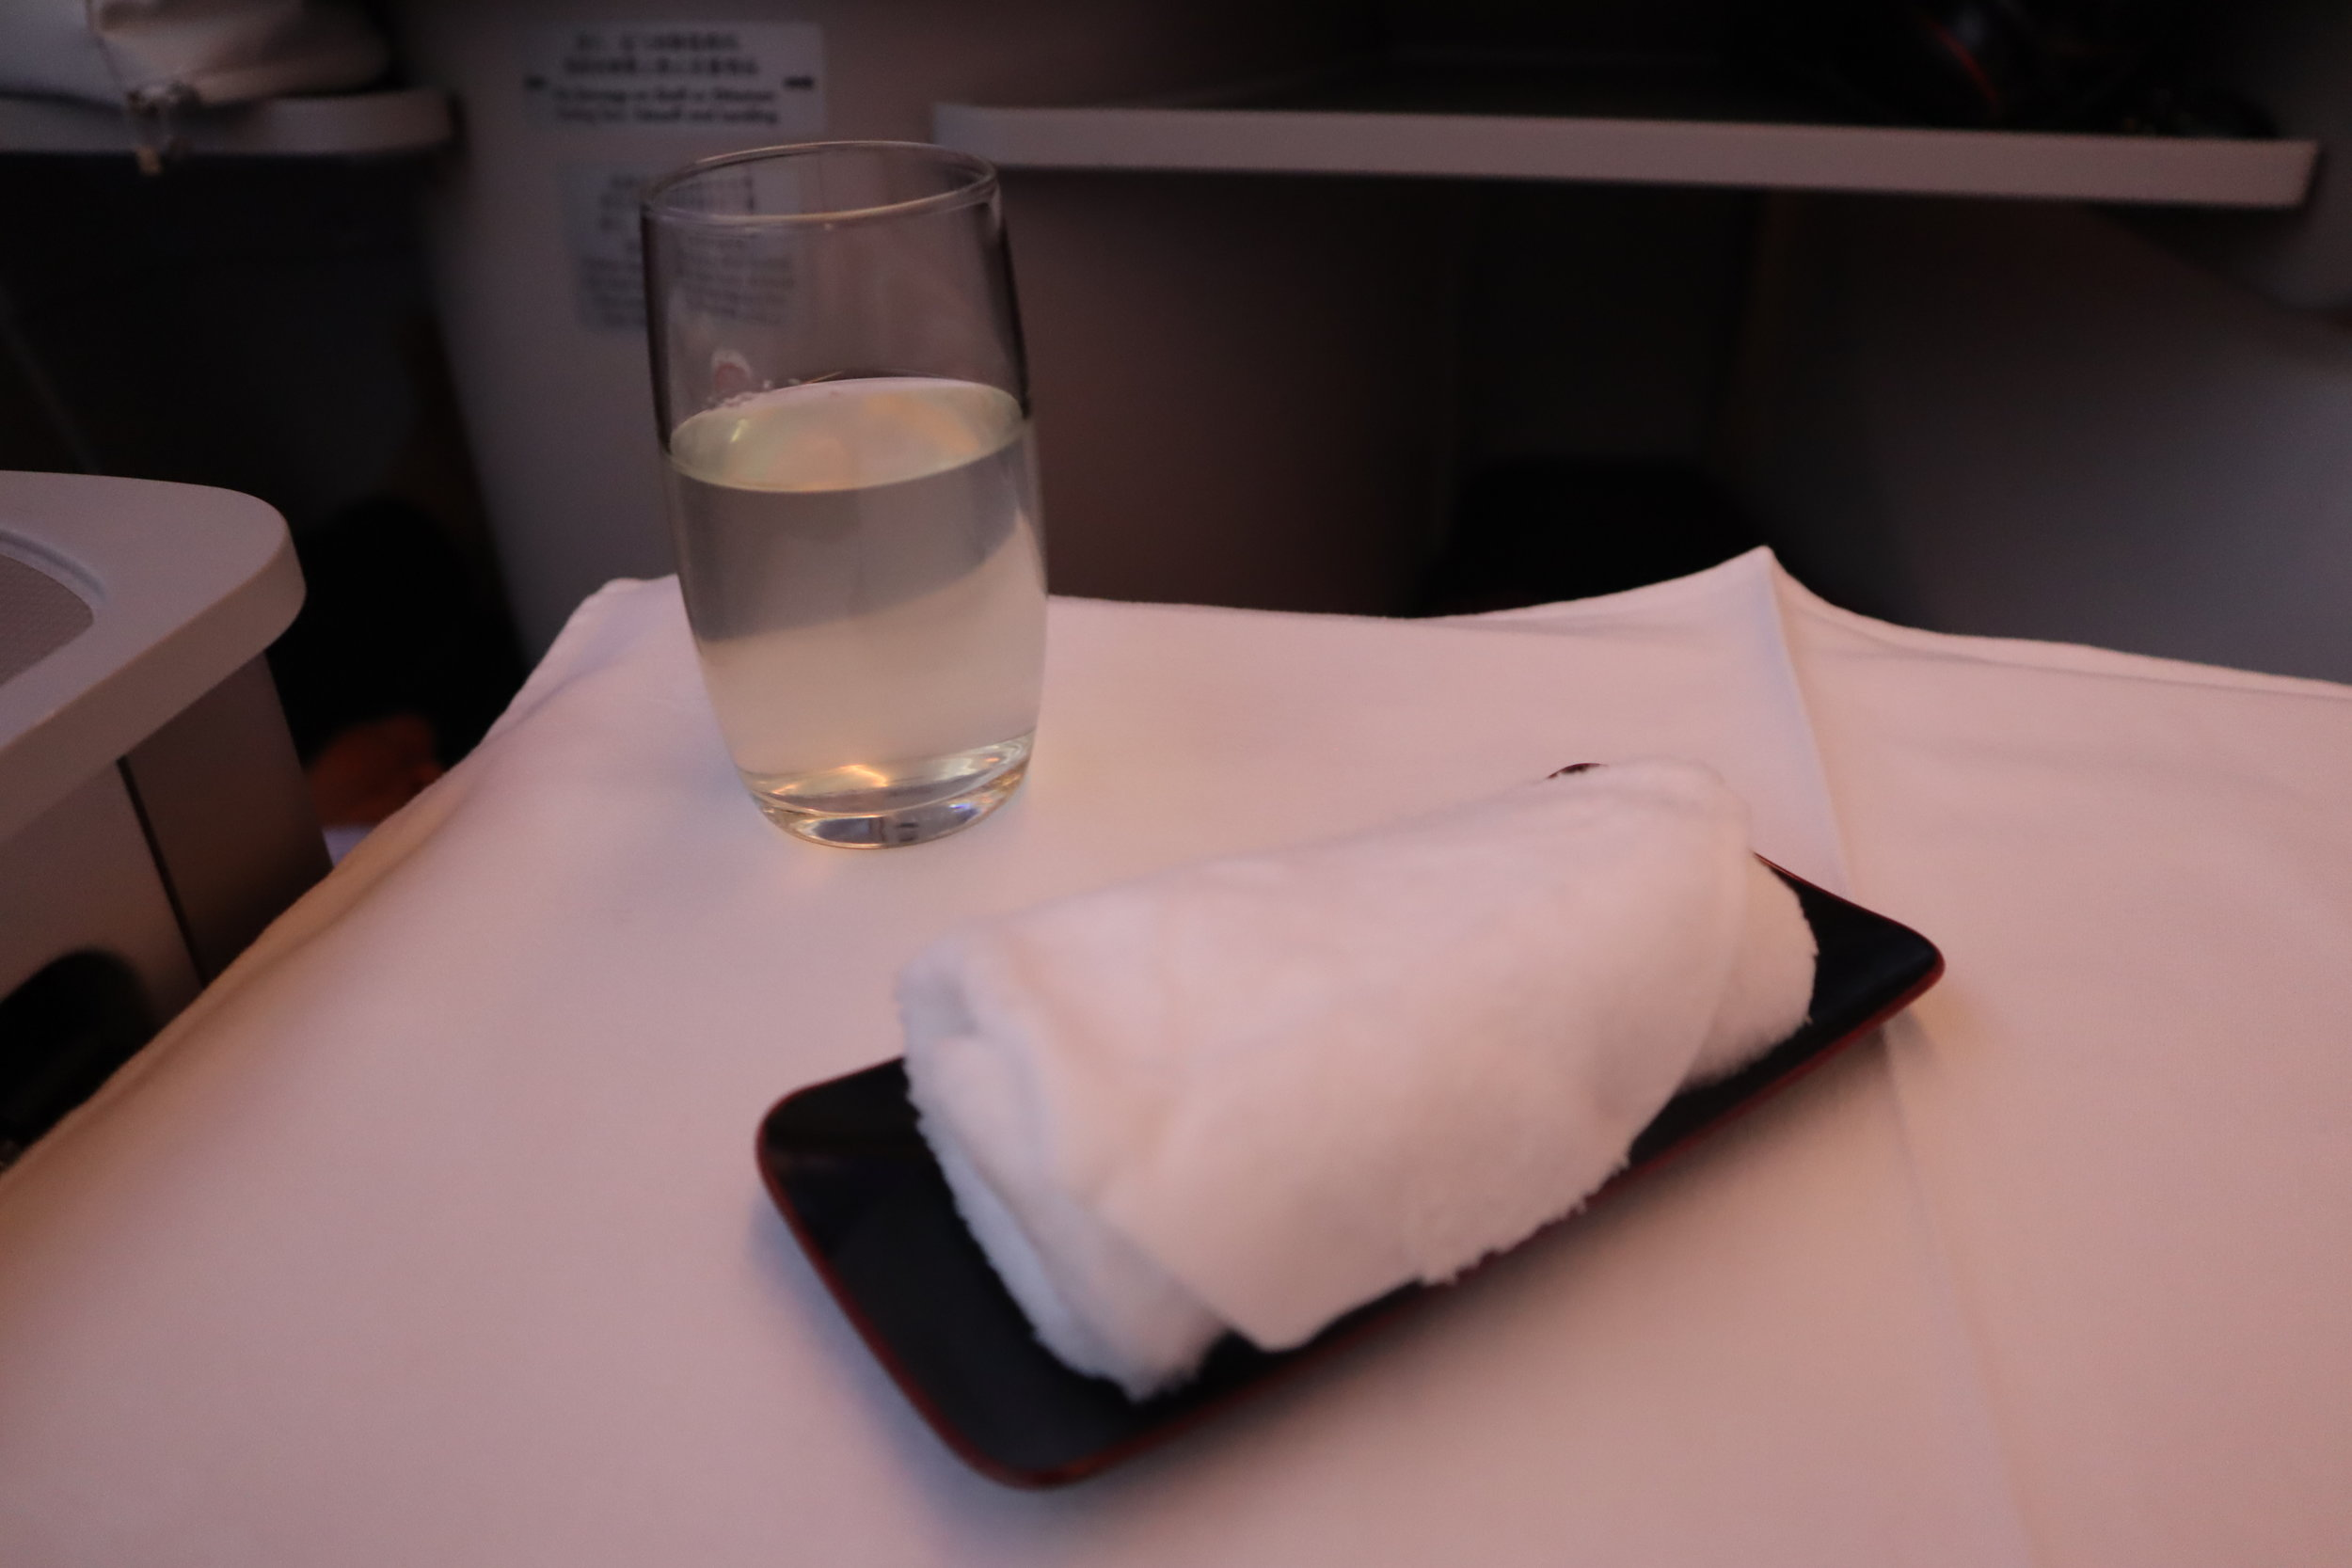 Air China business class – Second meal service